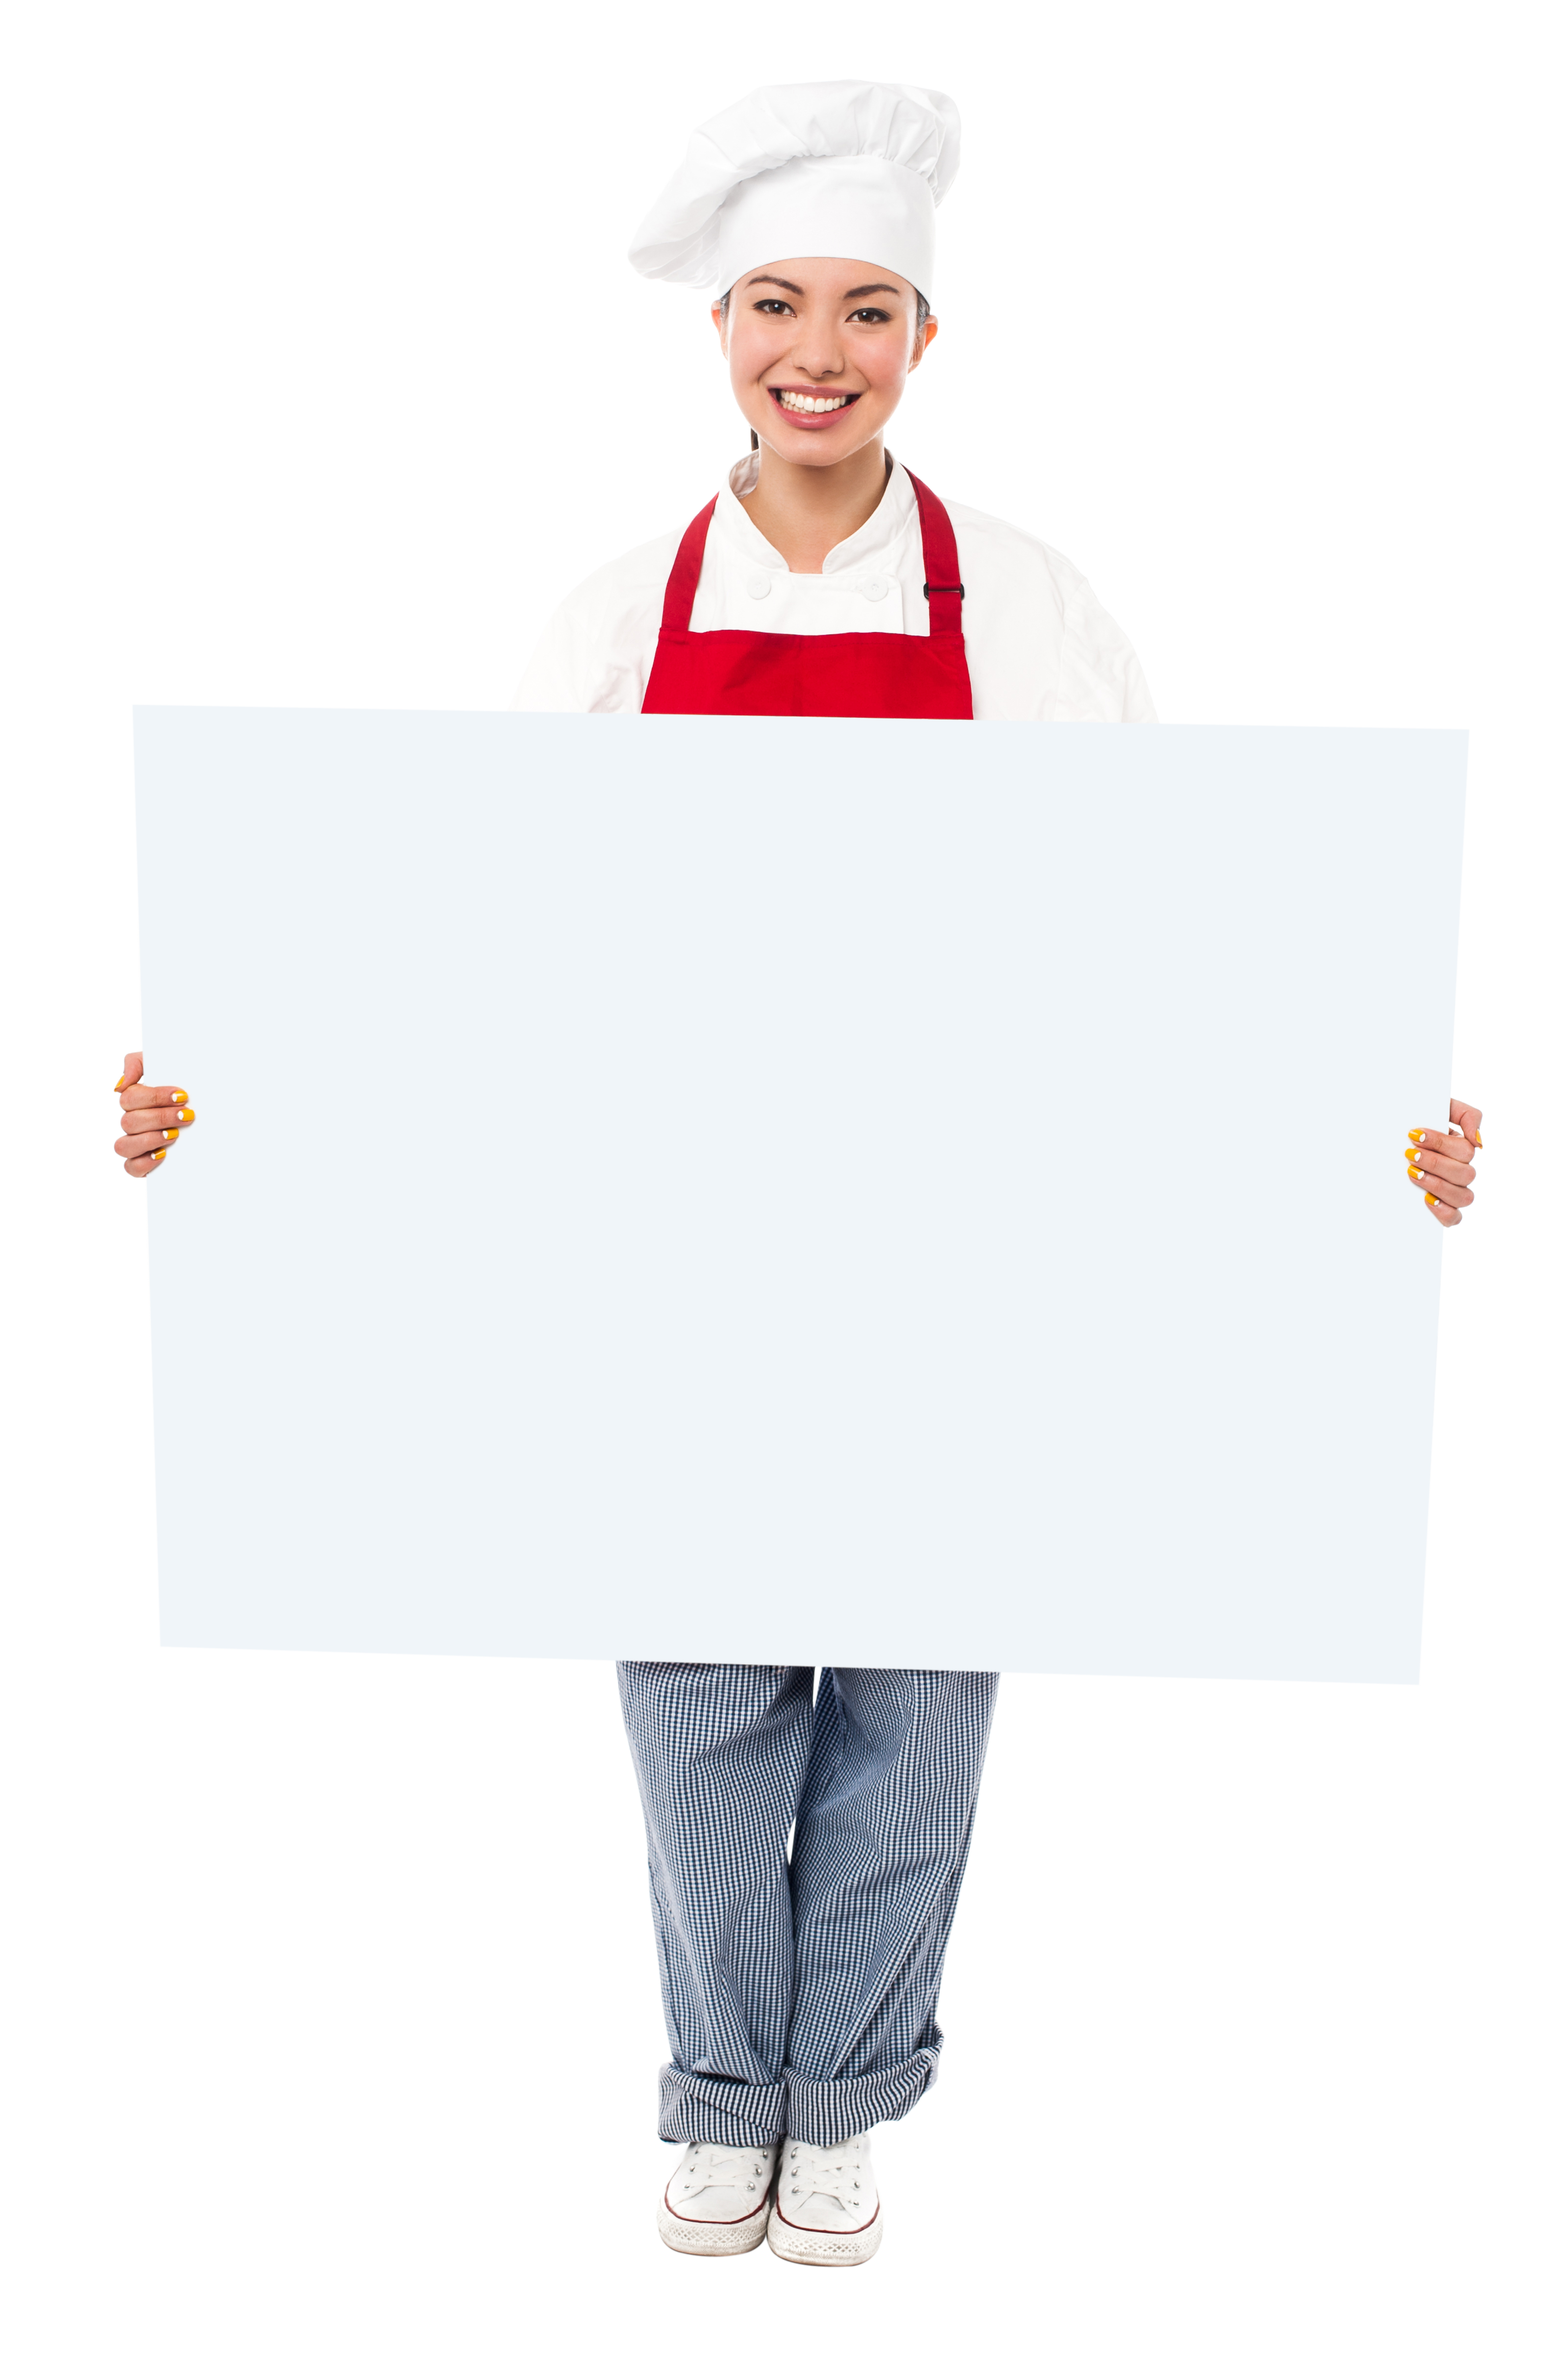 Chef Holding Banner PNG Image